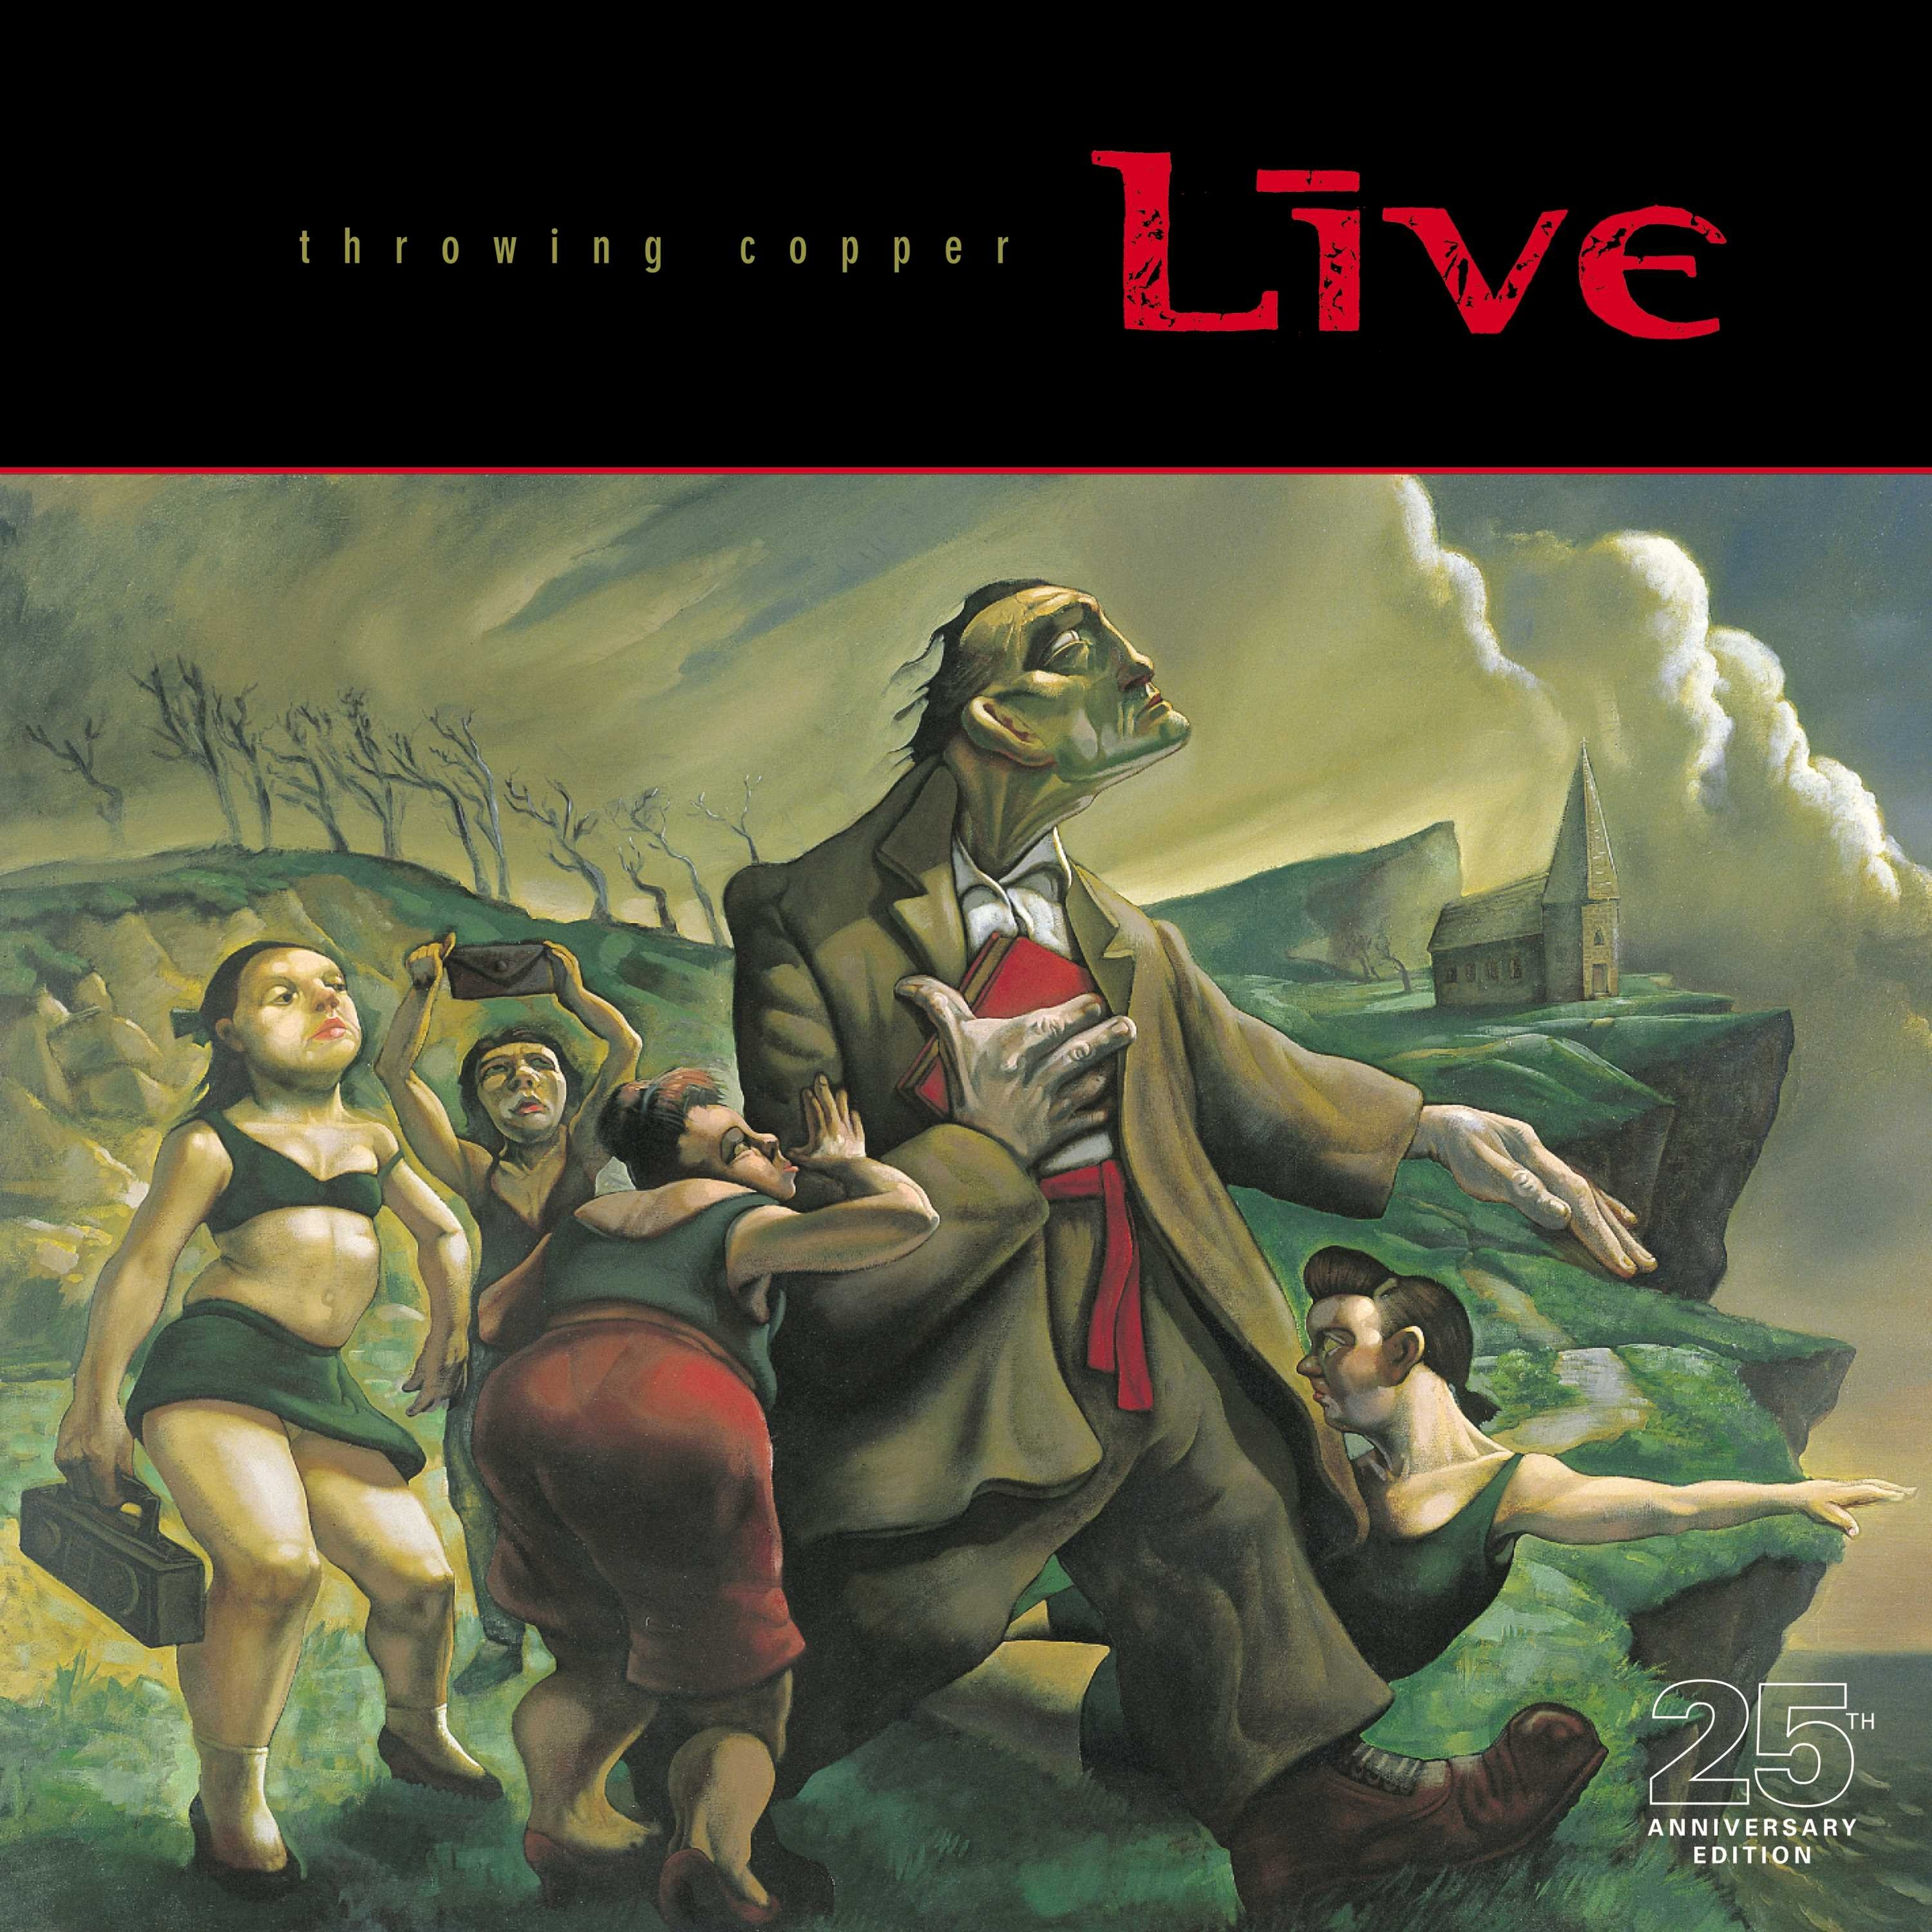 Live - Throwing Copper 2XLP vinyl (25th Anniversary)